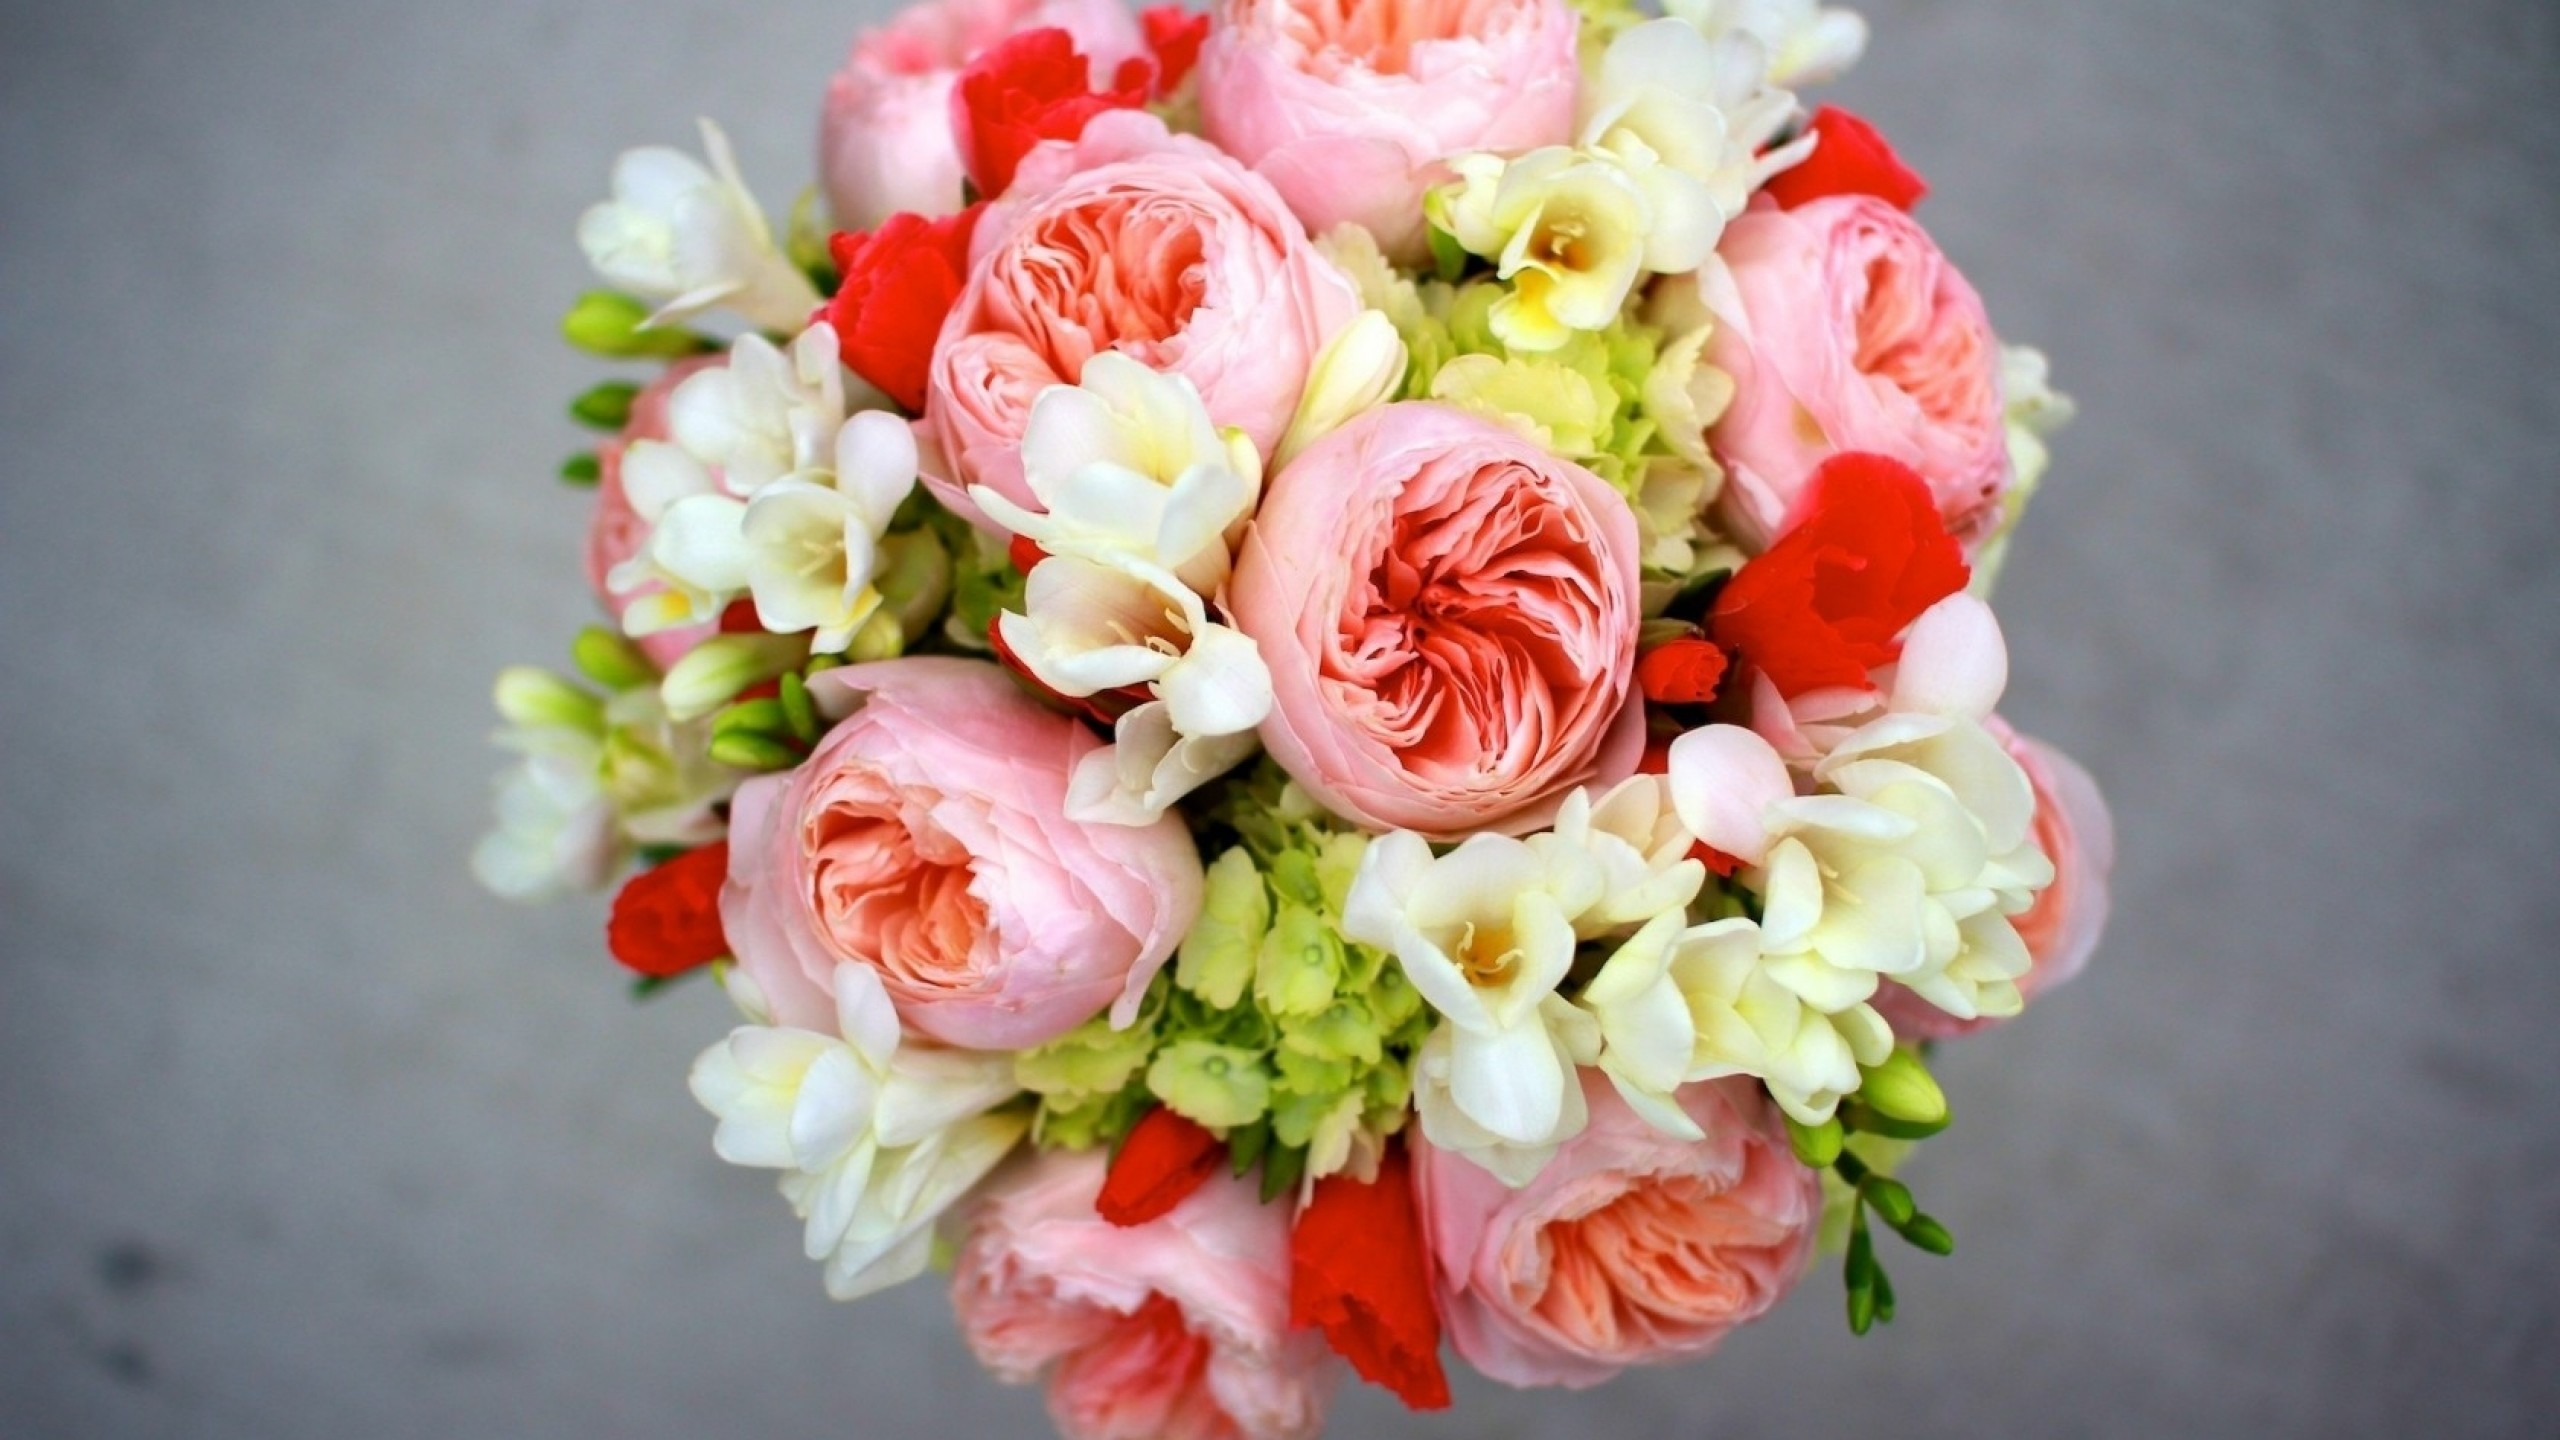 2560x1440 Preview wallpaper peony, freesia, hydrangea bouquet, arrangement, flowers